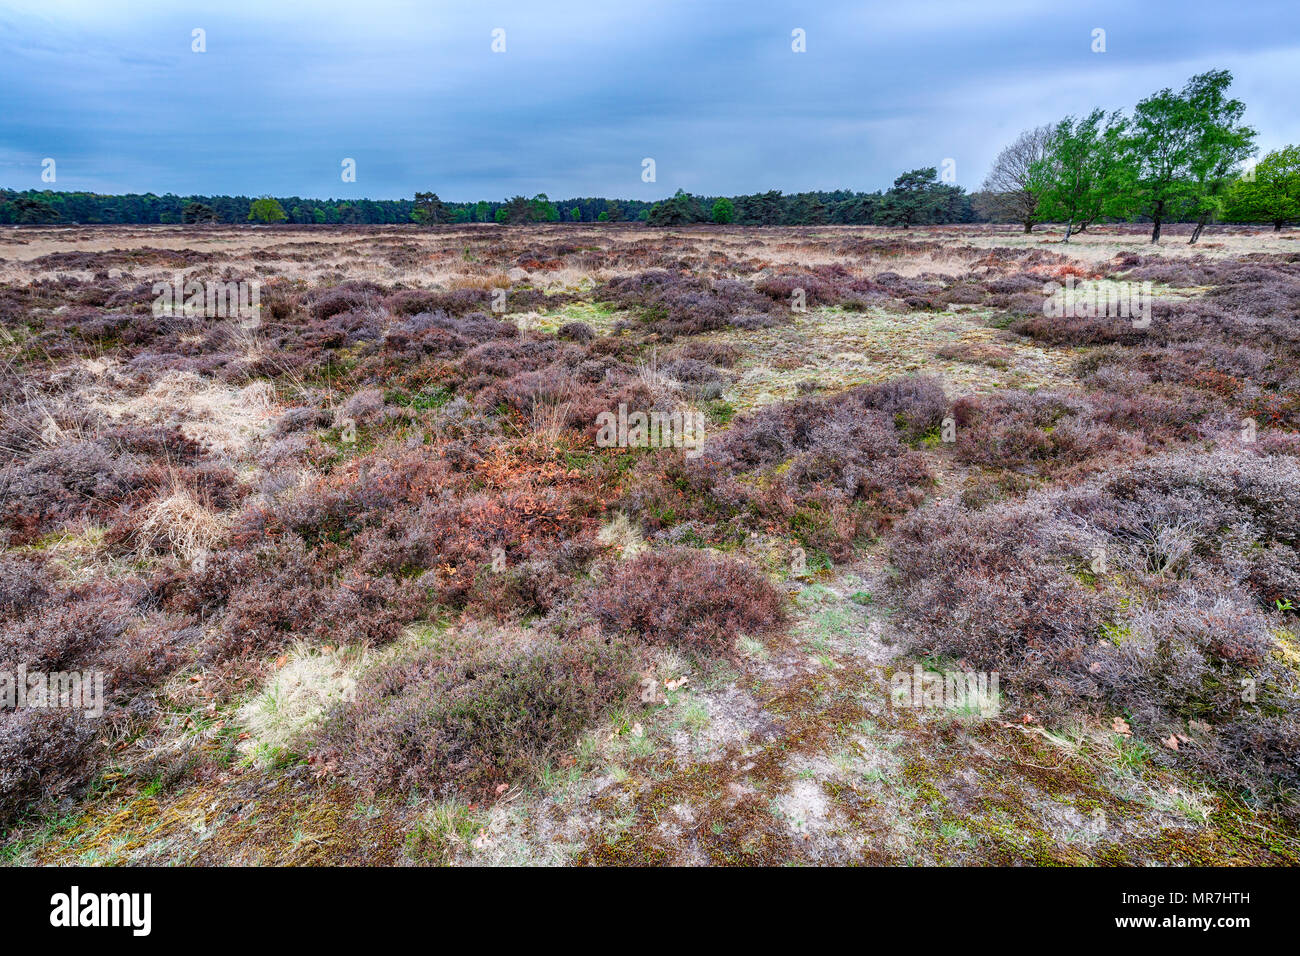 Heathland or moorlands on the national park Groote Zand near Hooghalen Drenthe during sunset. - Stock Image